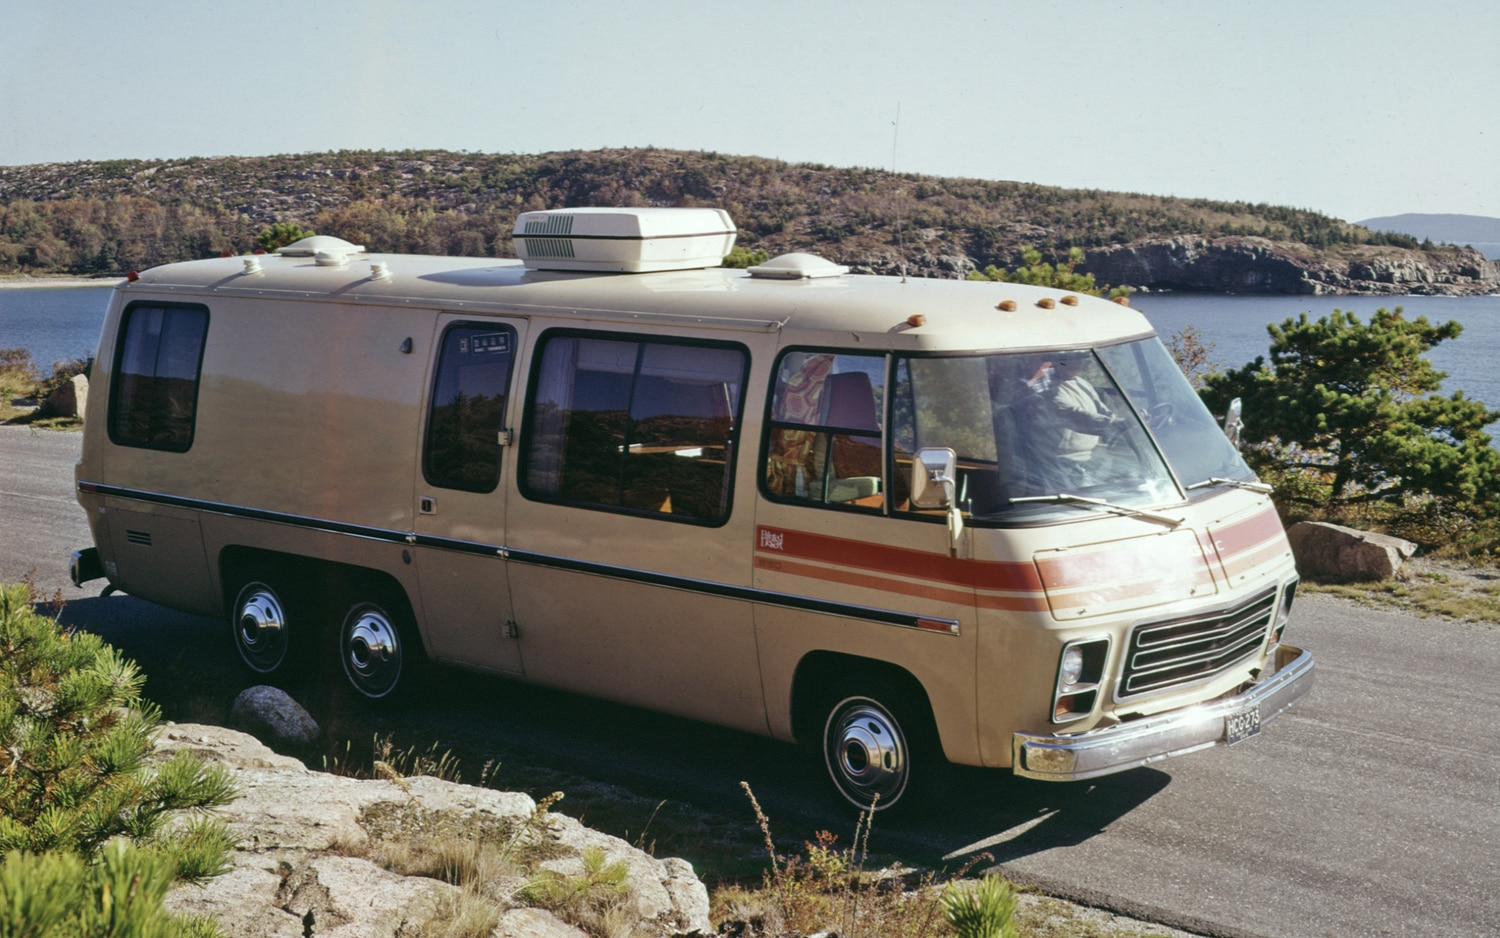 1974 GMC Painted Desert Motor Home ST